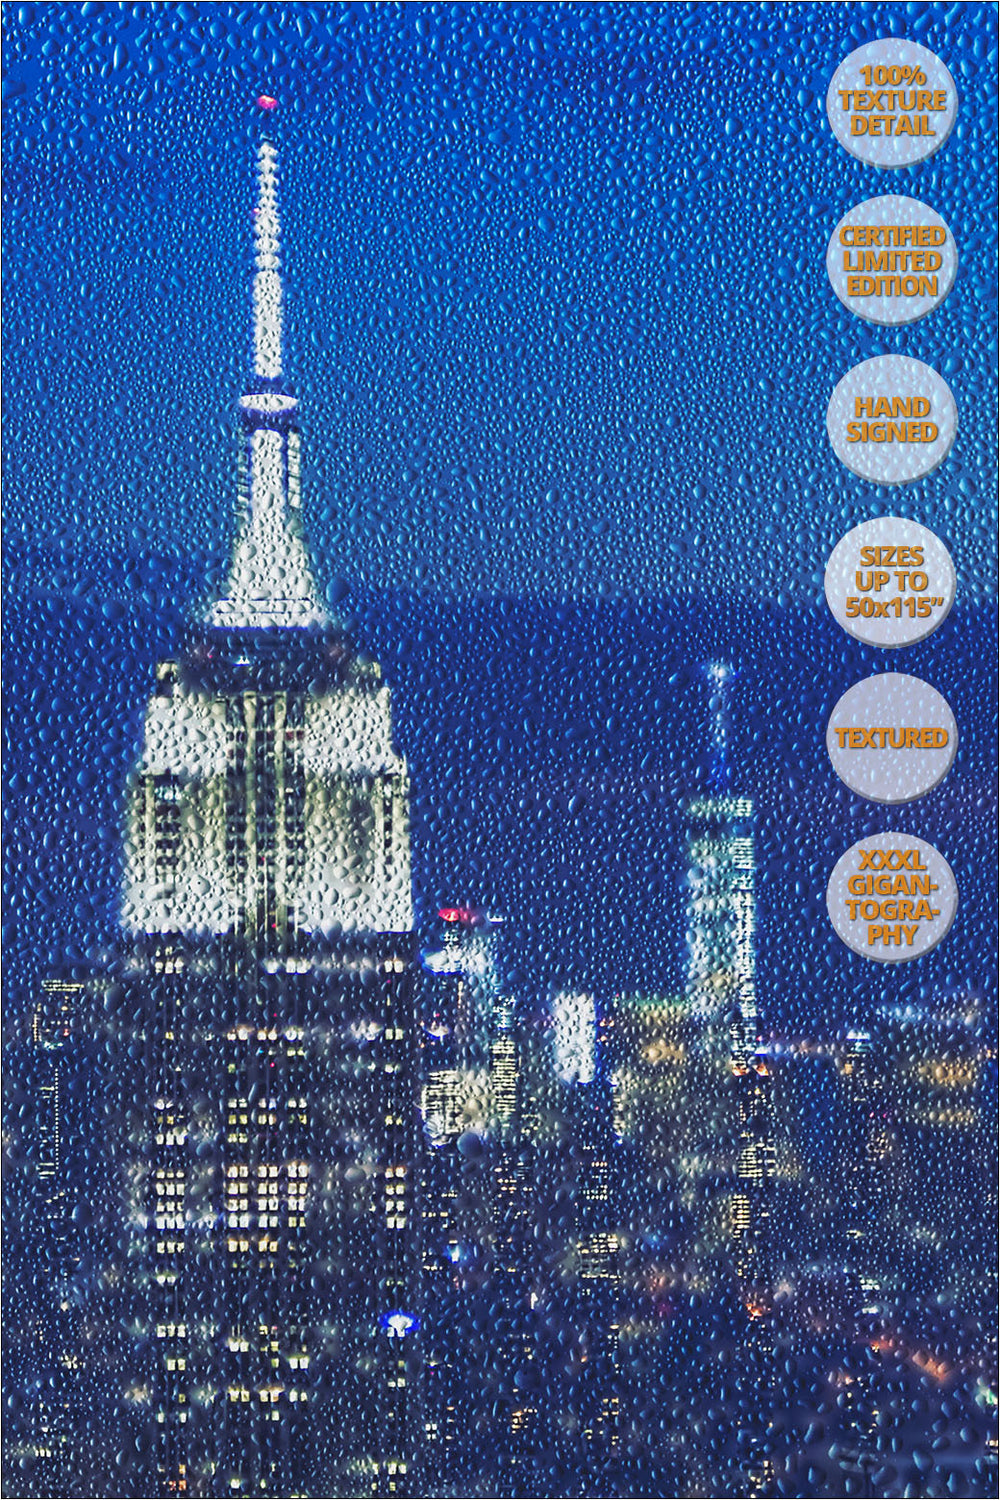 The Empire State at dusk, Manhattan, New York. | 100% Magnification Detail View of the Print.